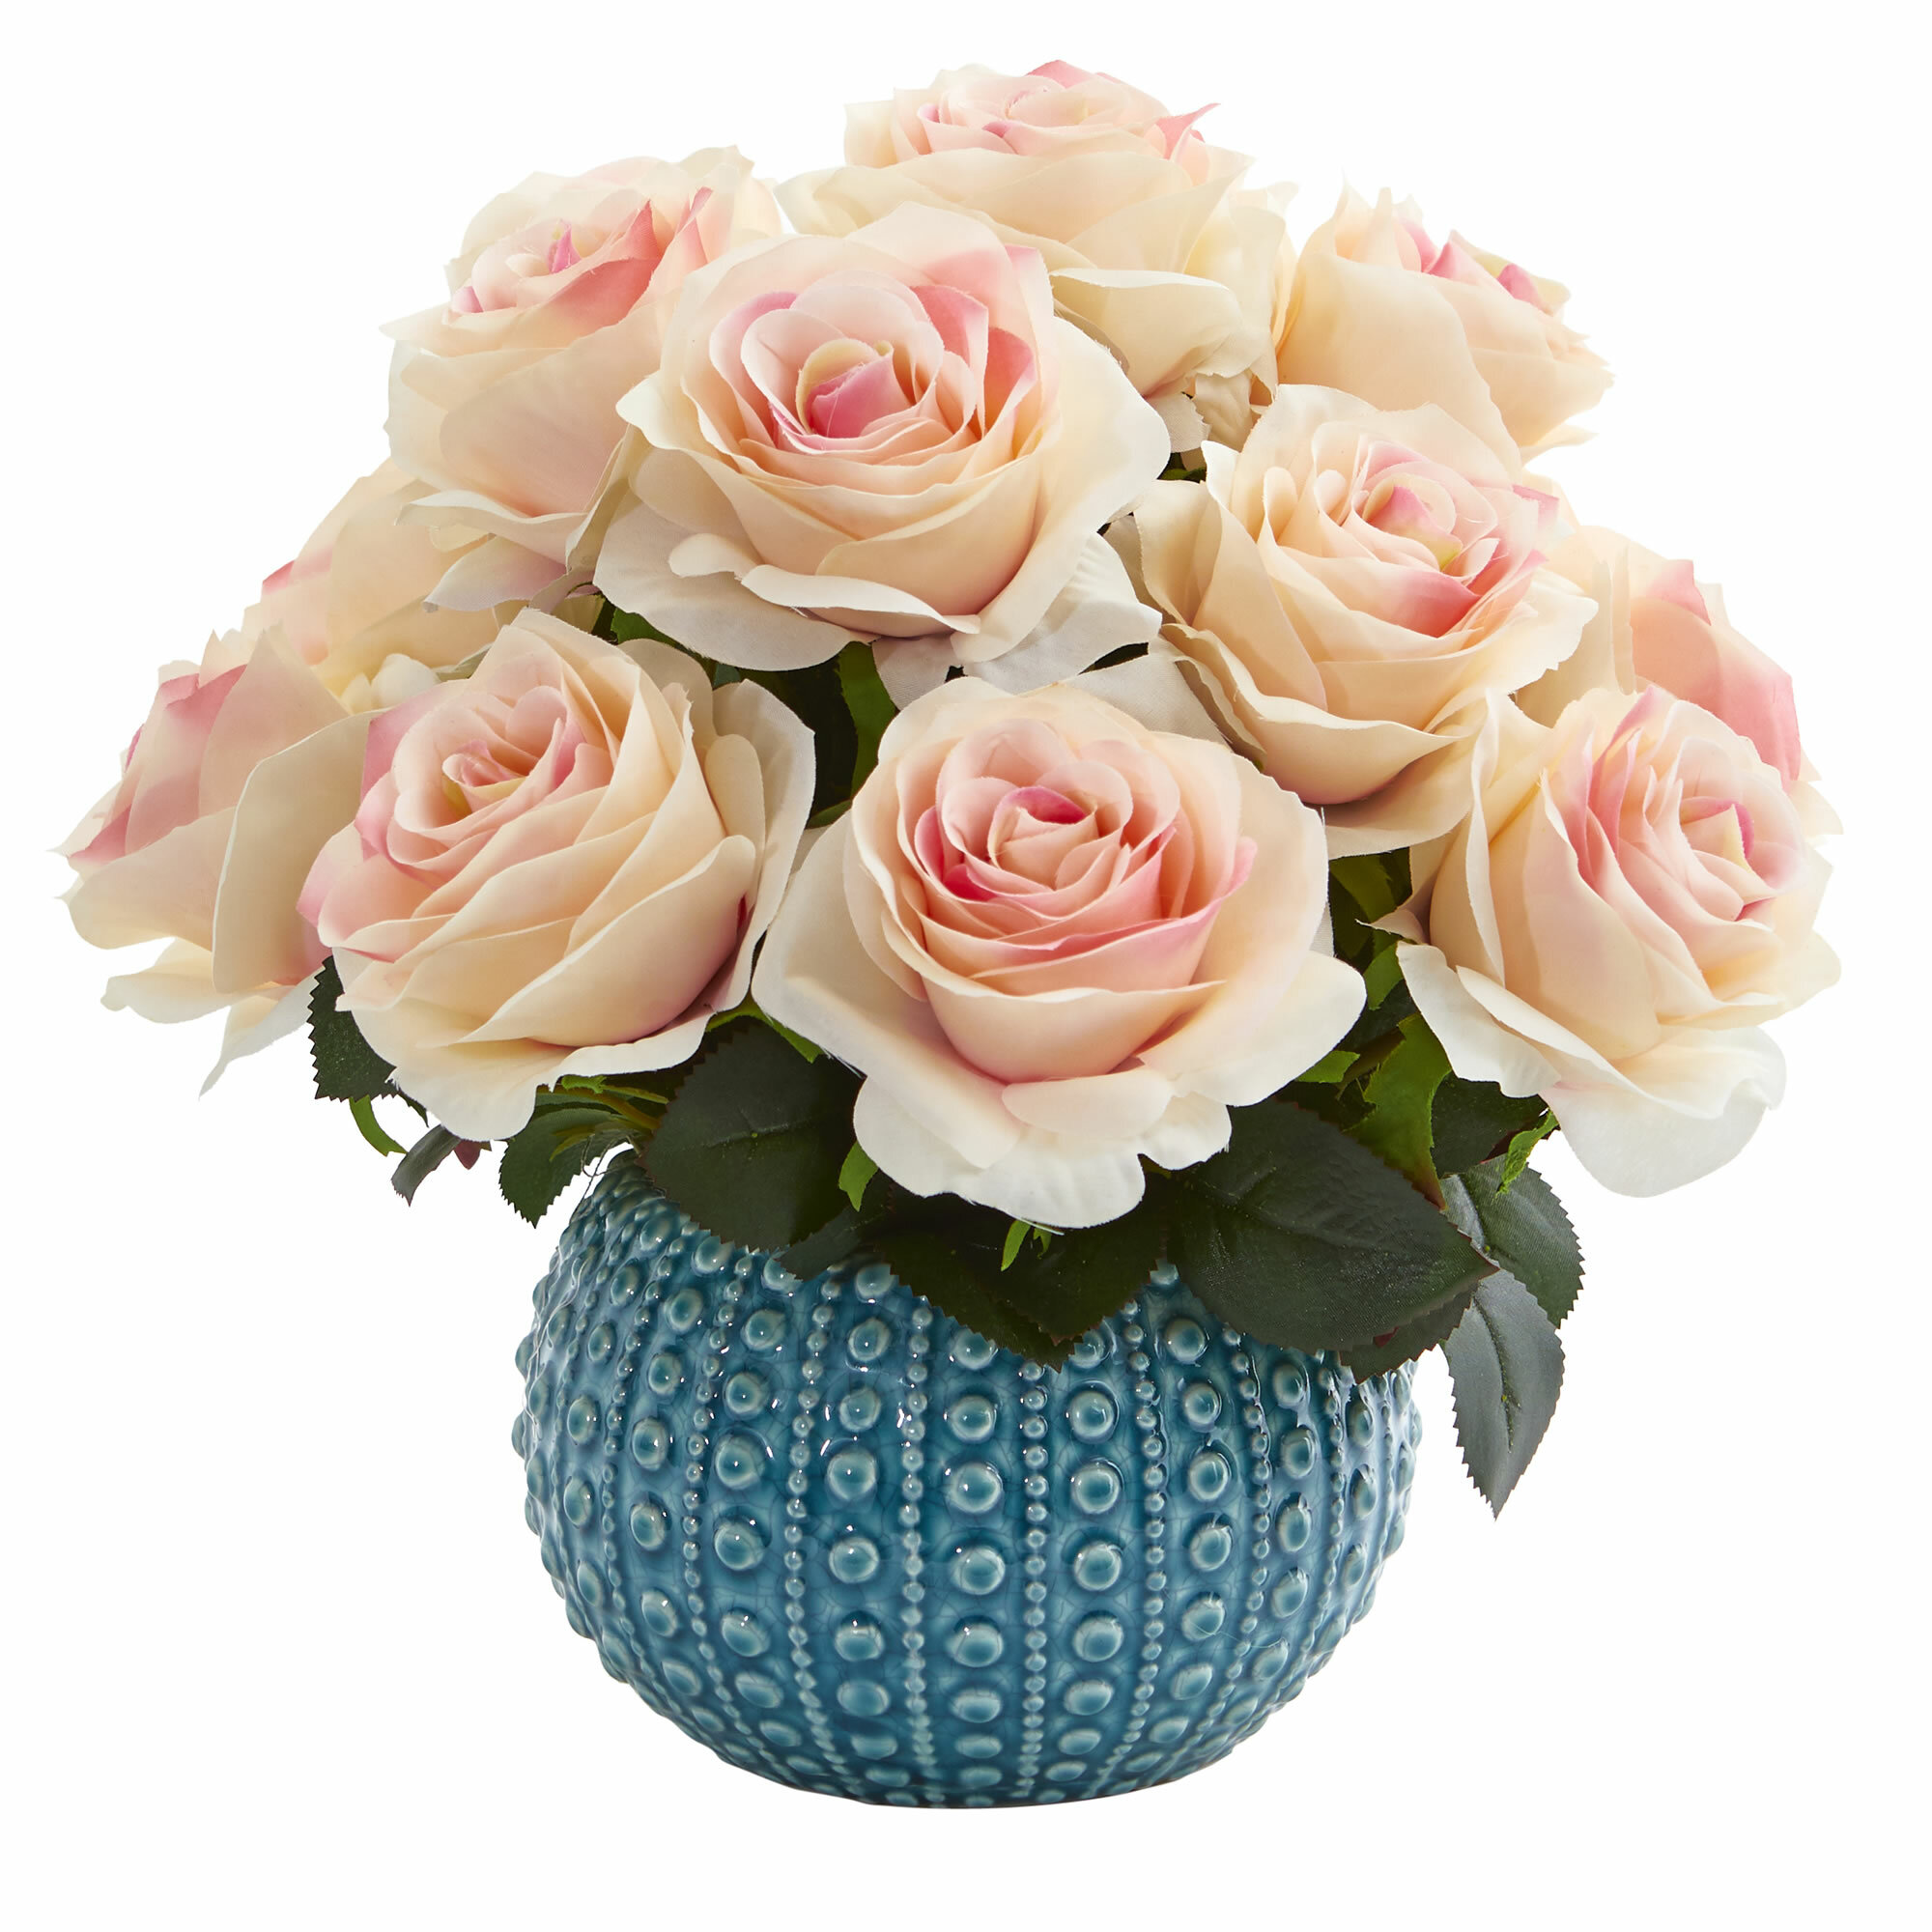 Rose Artificial Floral Arrangement In Ceramic Vase Reviews Joss